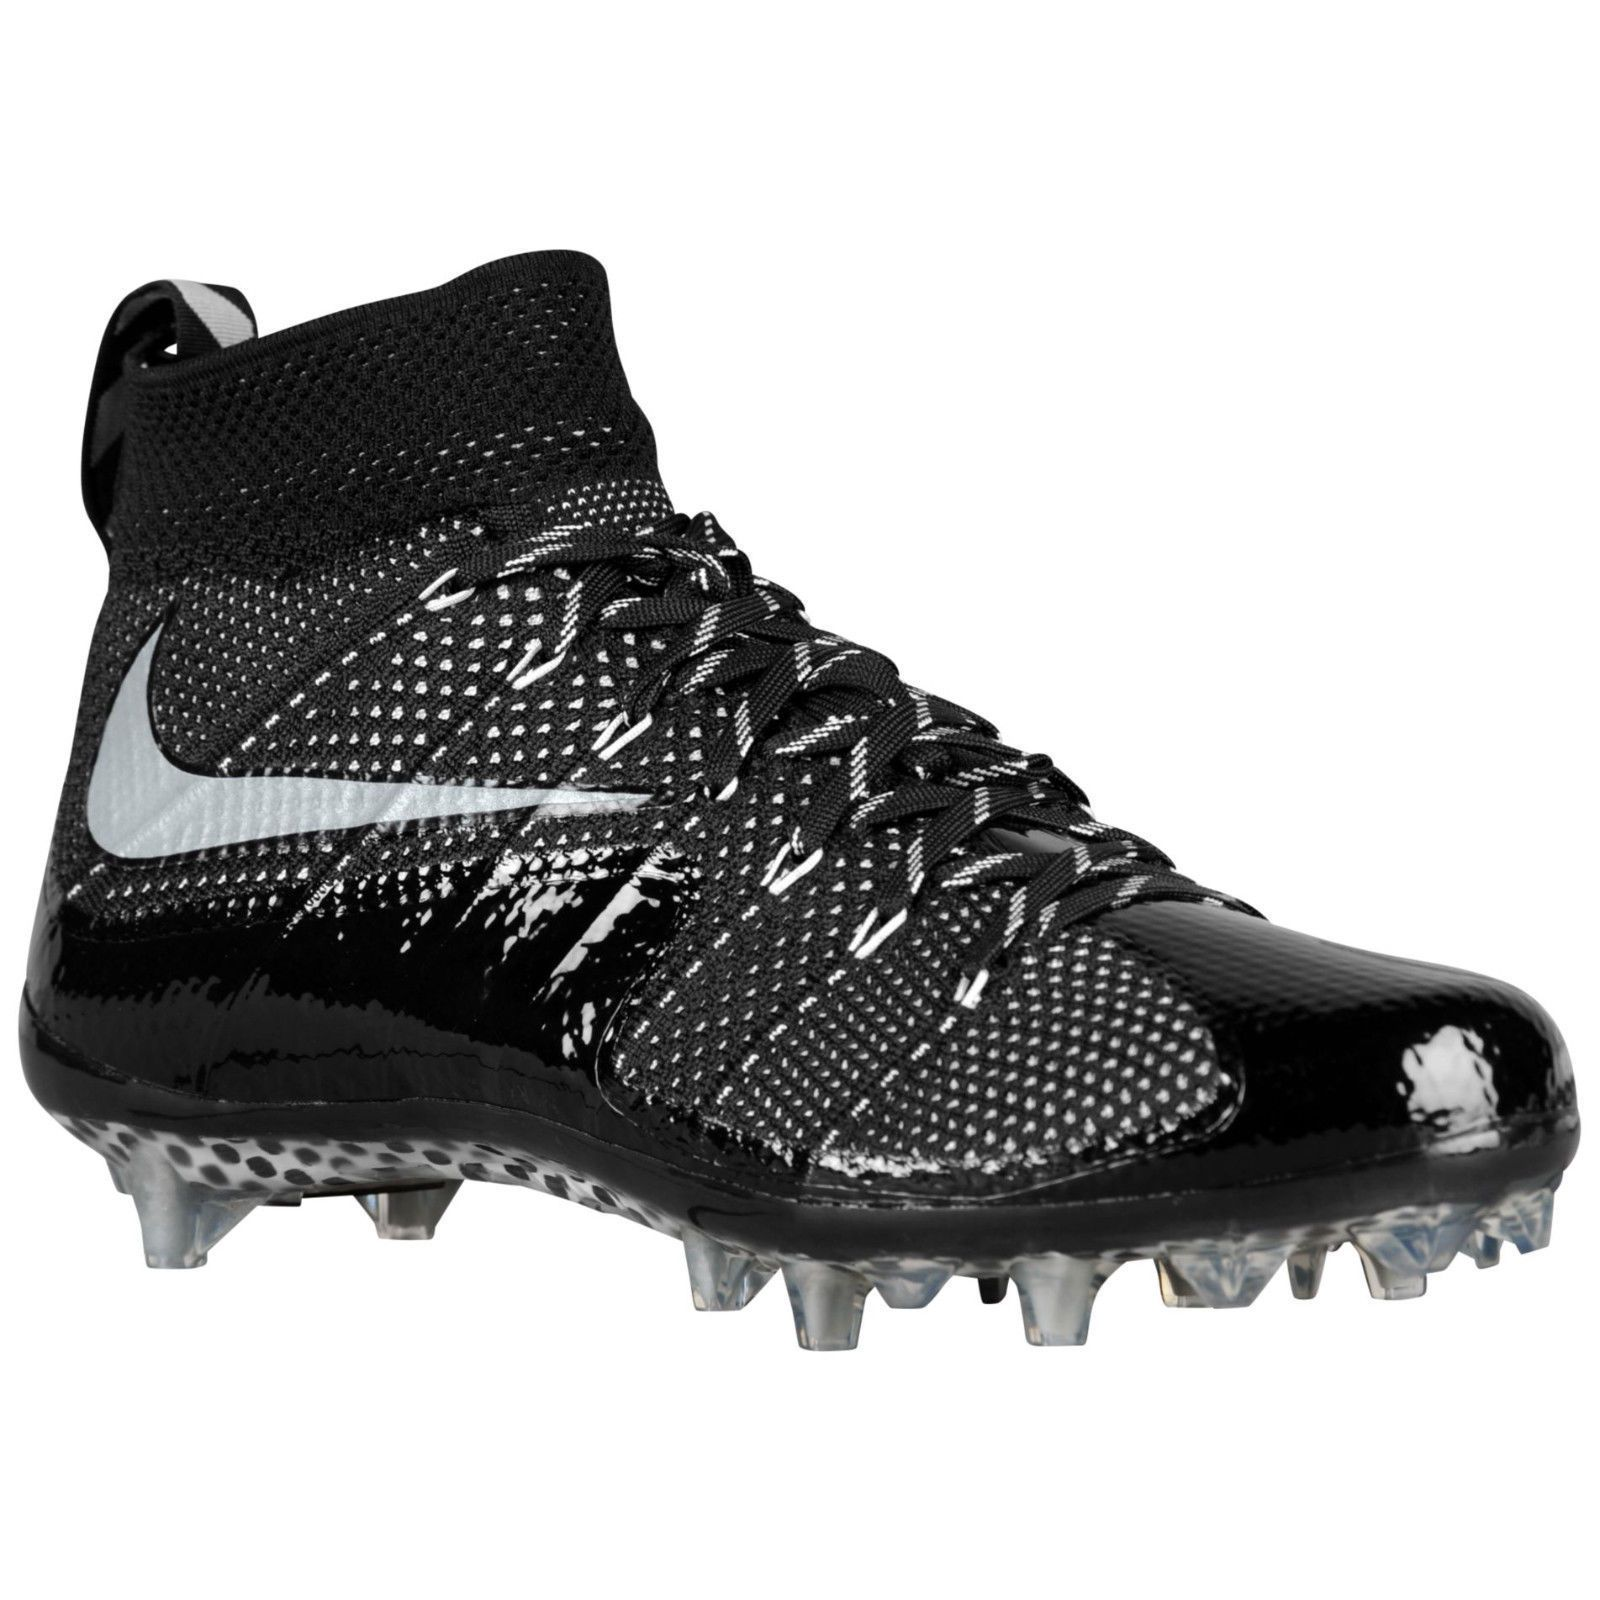 NIKE VAPOR UNTOUCHABLE TD FOOTBALL CLEATS BLACK/WHITE SIZE 12 NEW  (698833-010